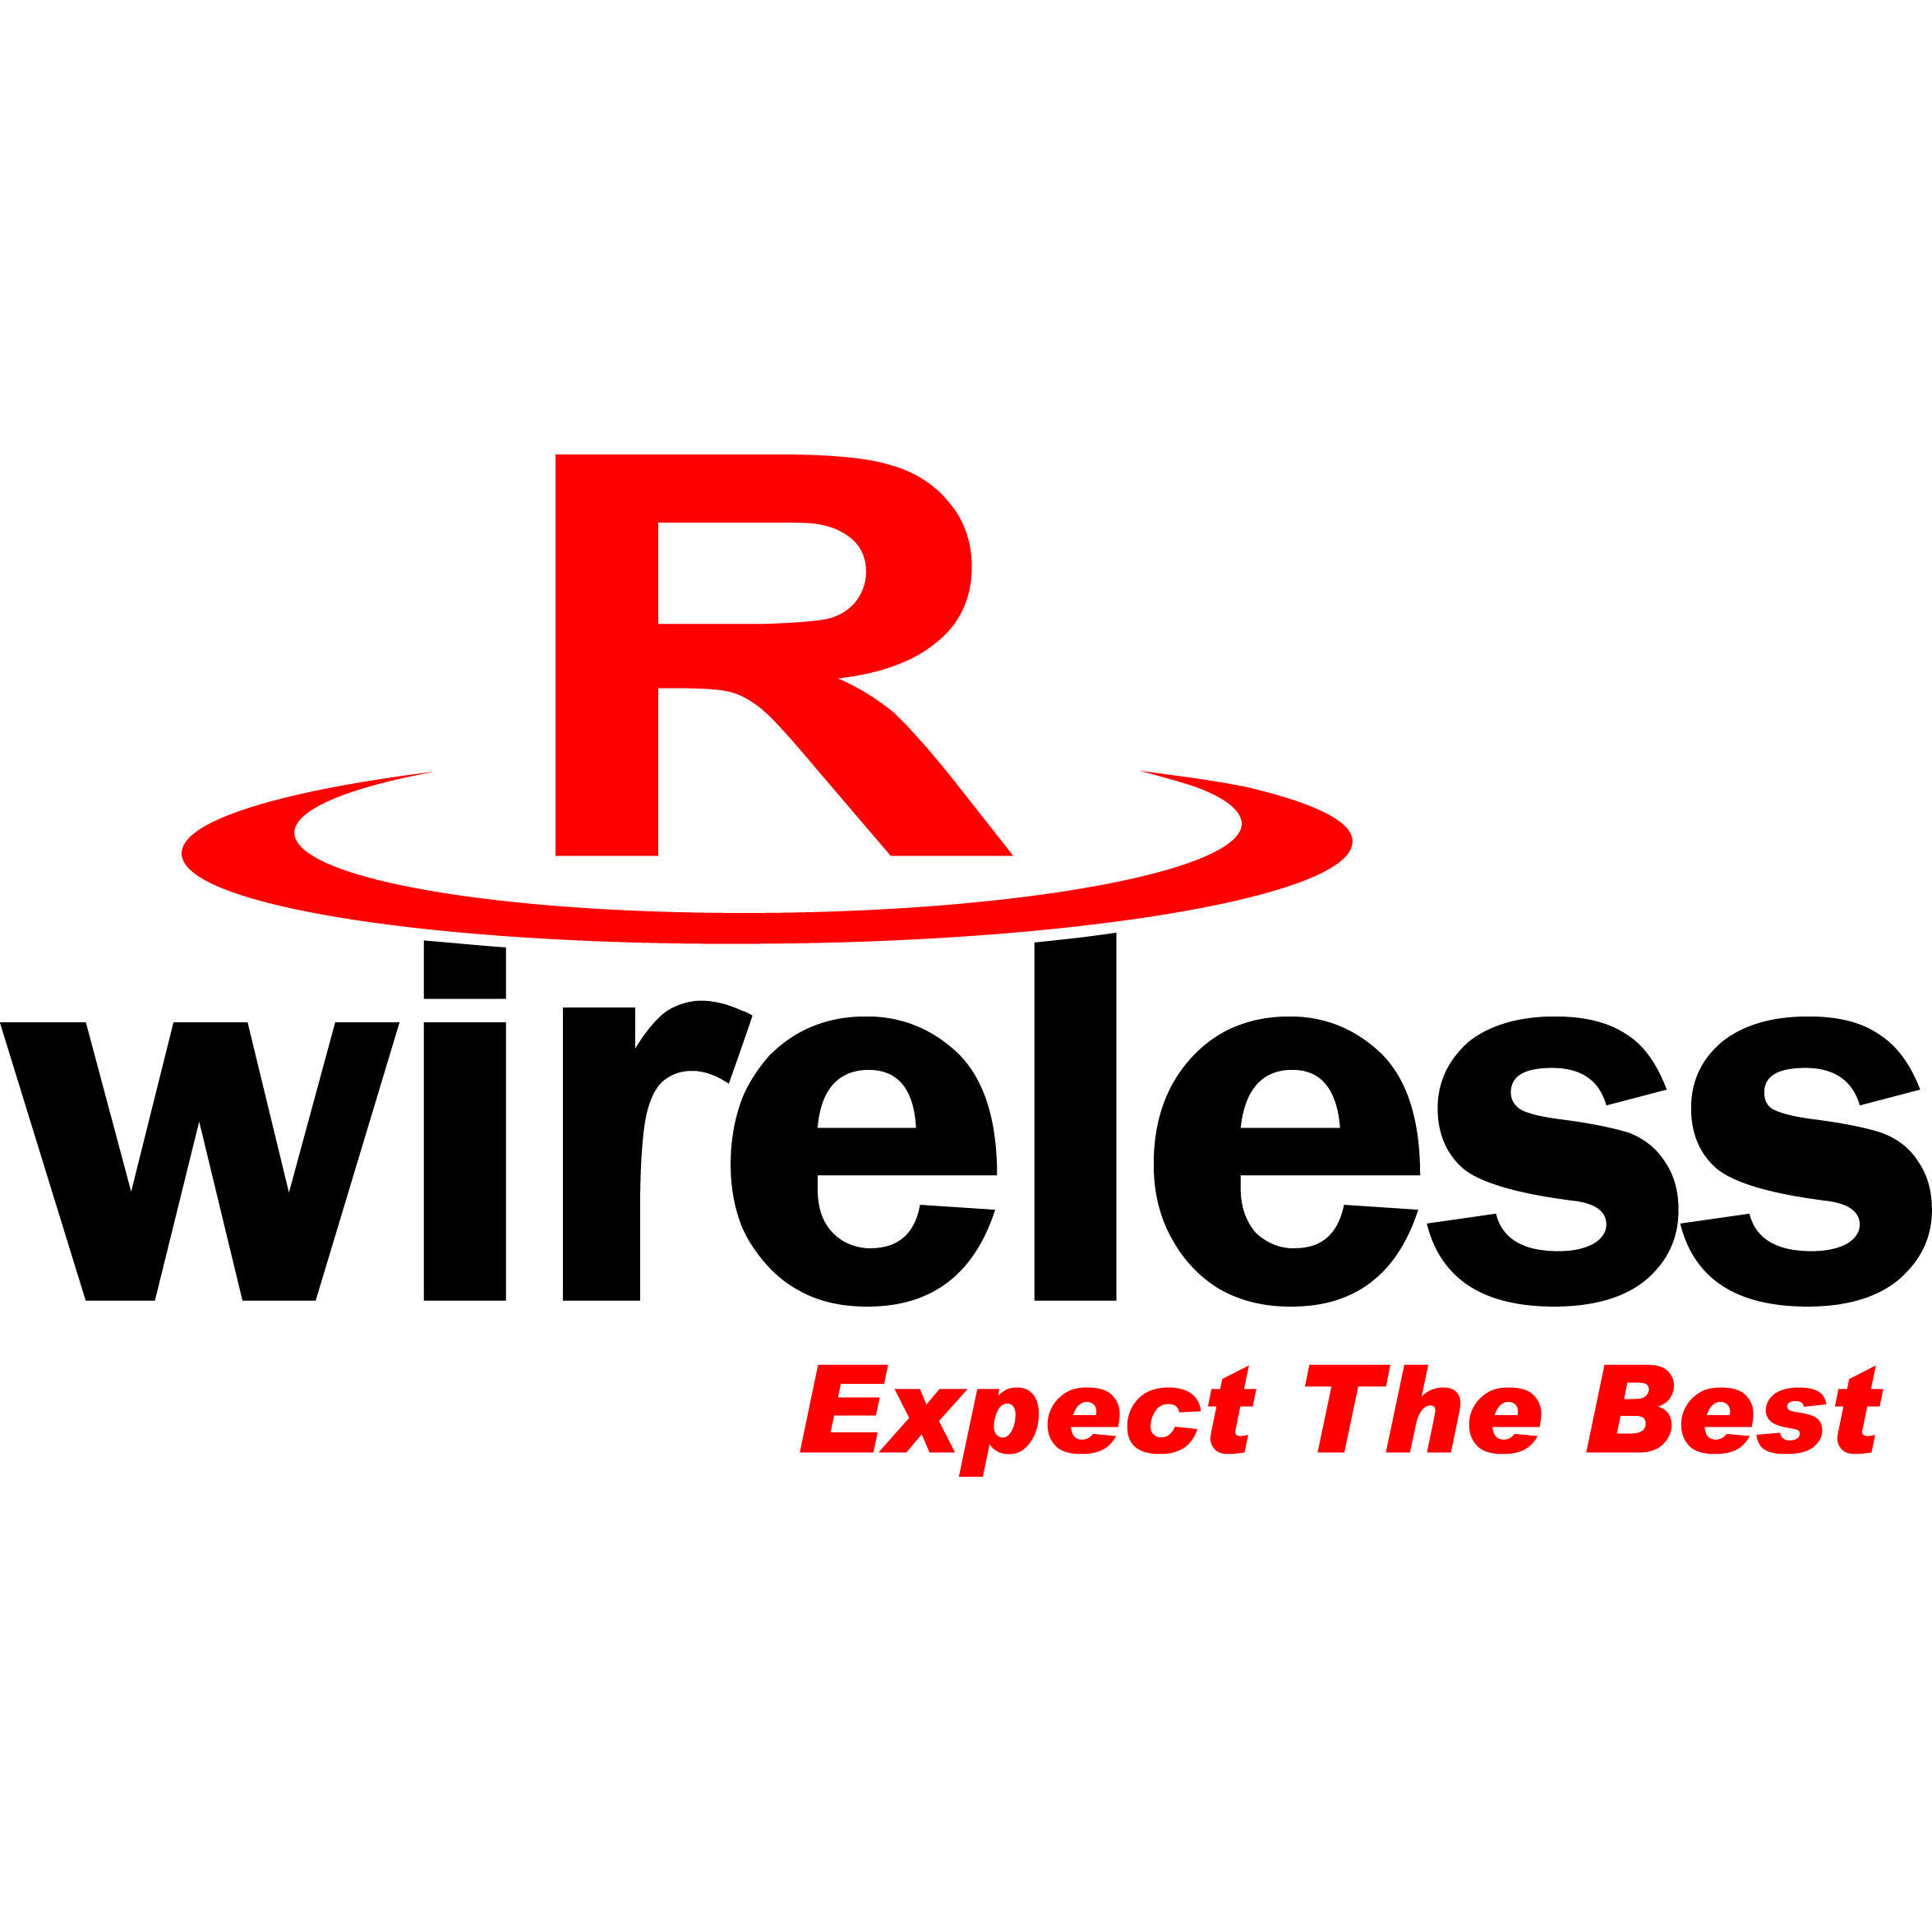 R-Wireless, Verizon Wireless Authorized Retailer